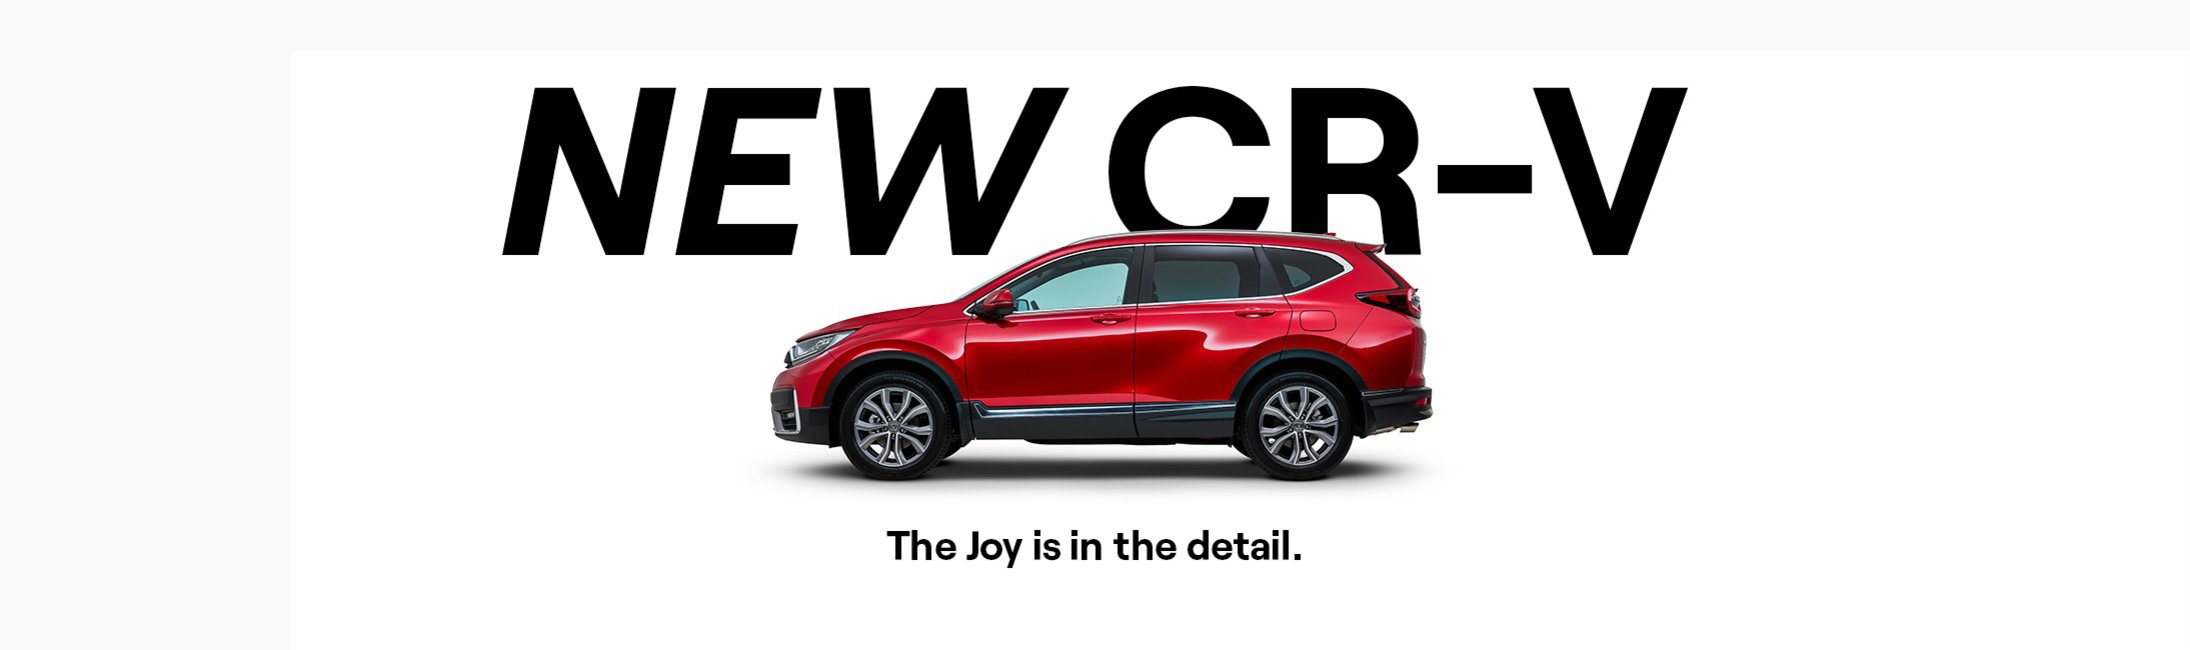 Honda New CR-V